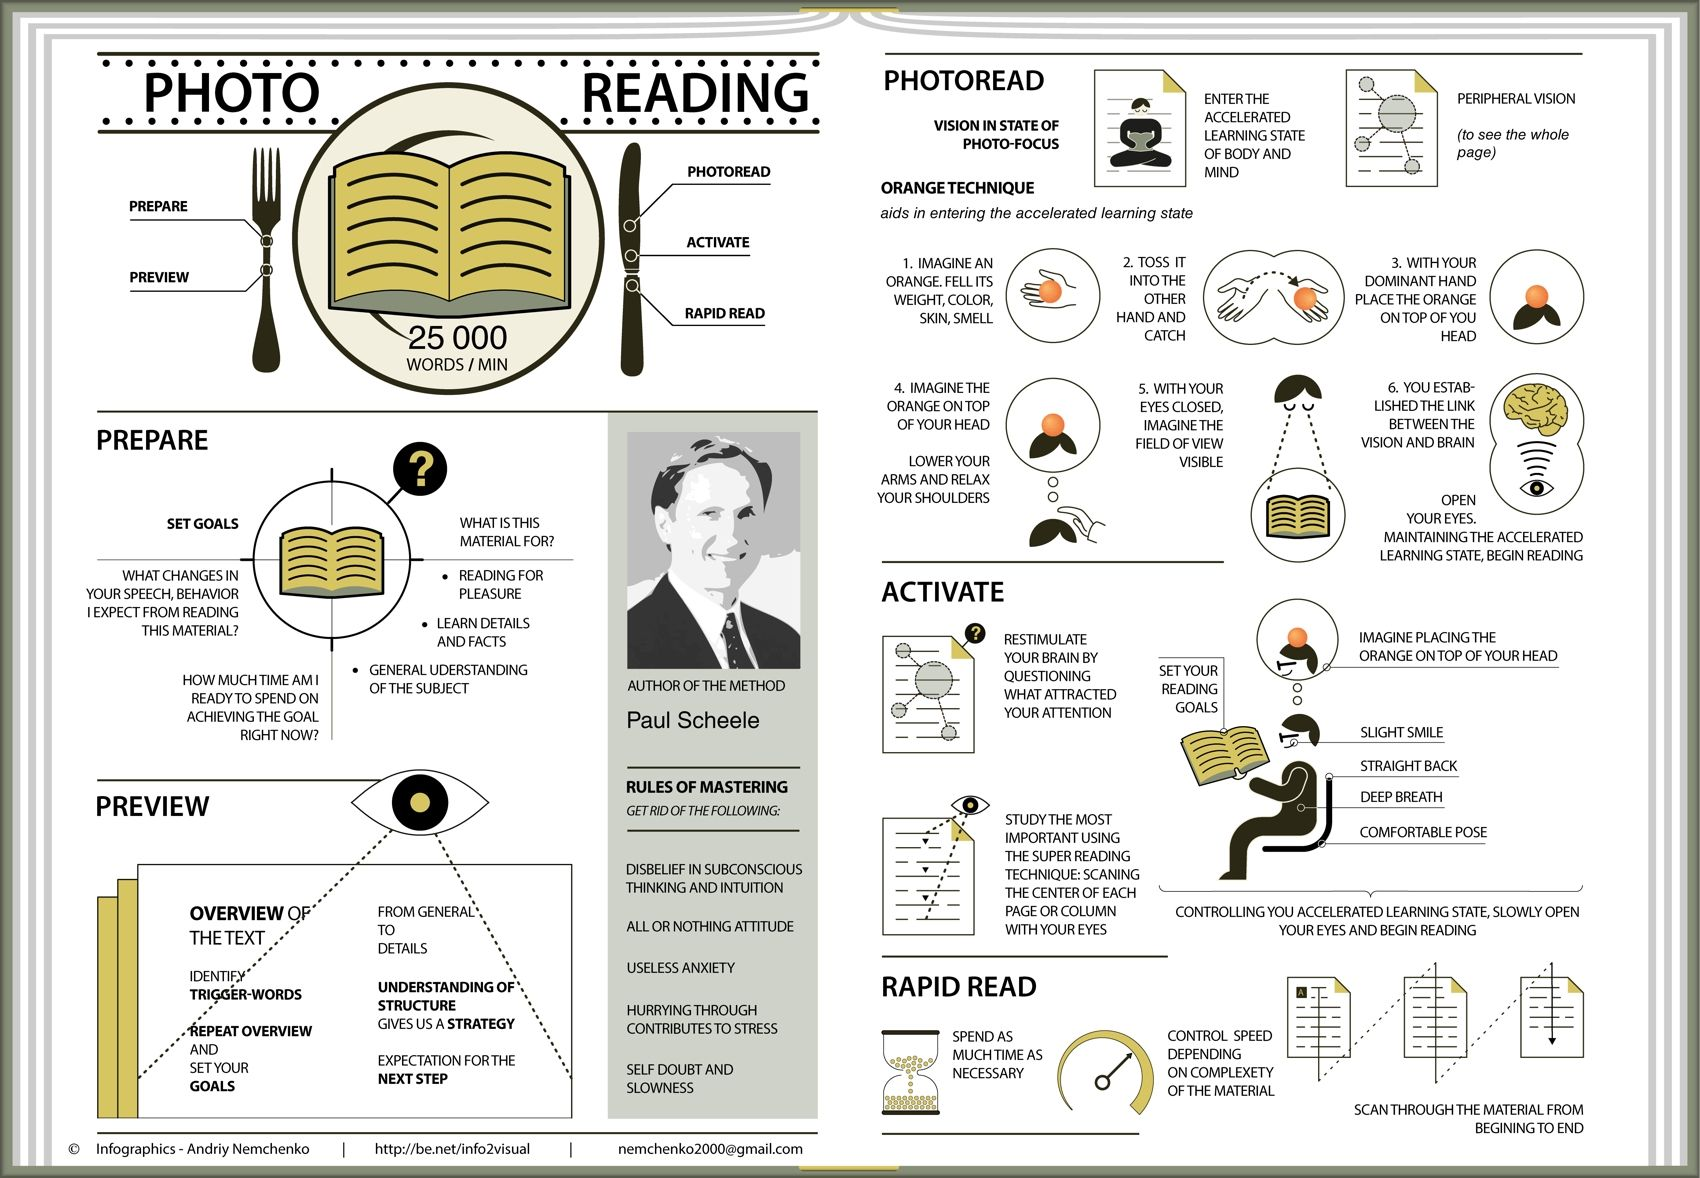 How To Read At The Speed Of 25 000 Words Per Minute Infographic Improve Reading Skills Reading Skills Reading Comprehension Posters Reading speed test for grade